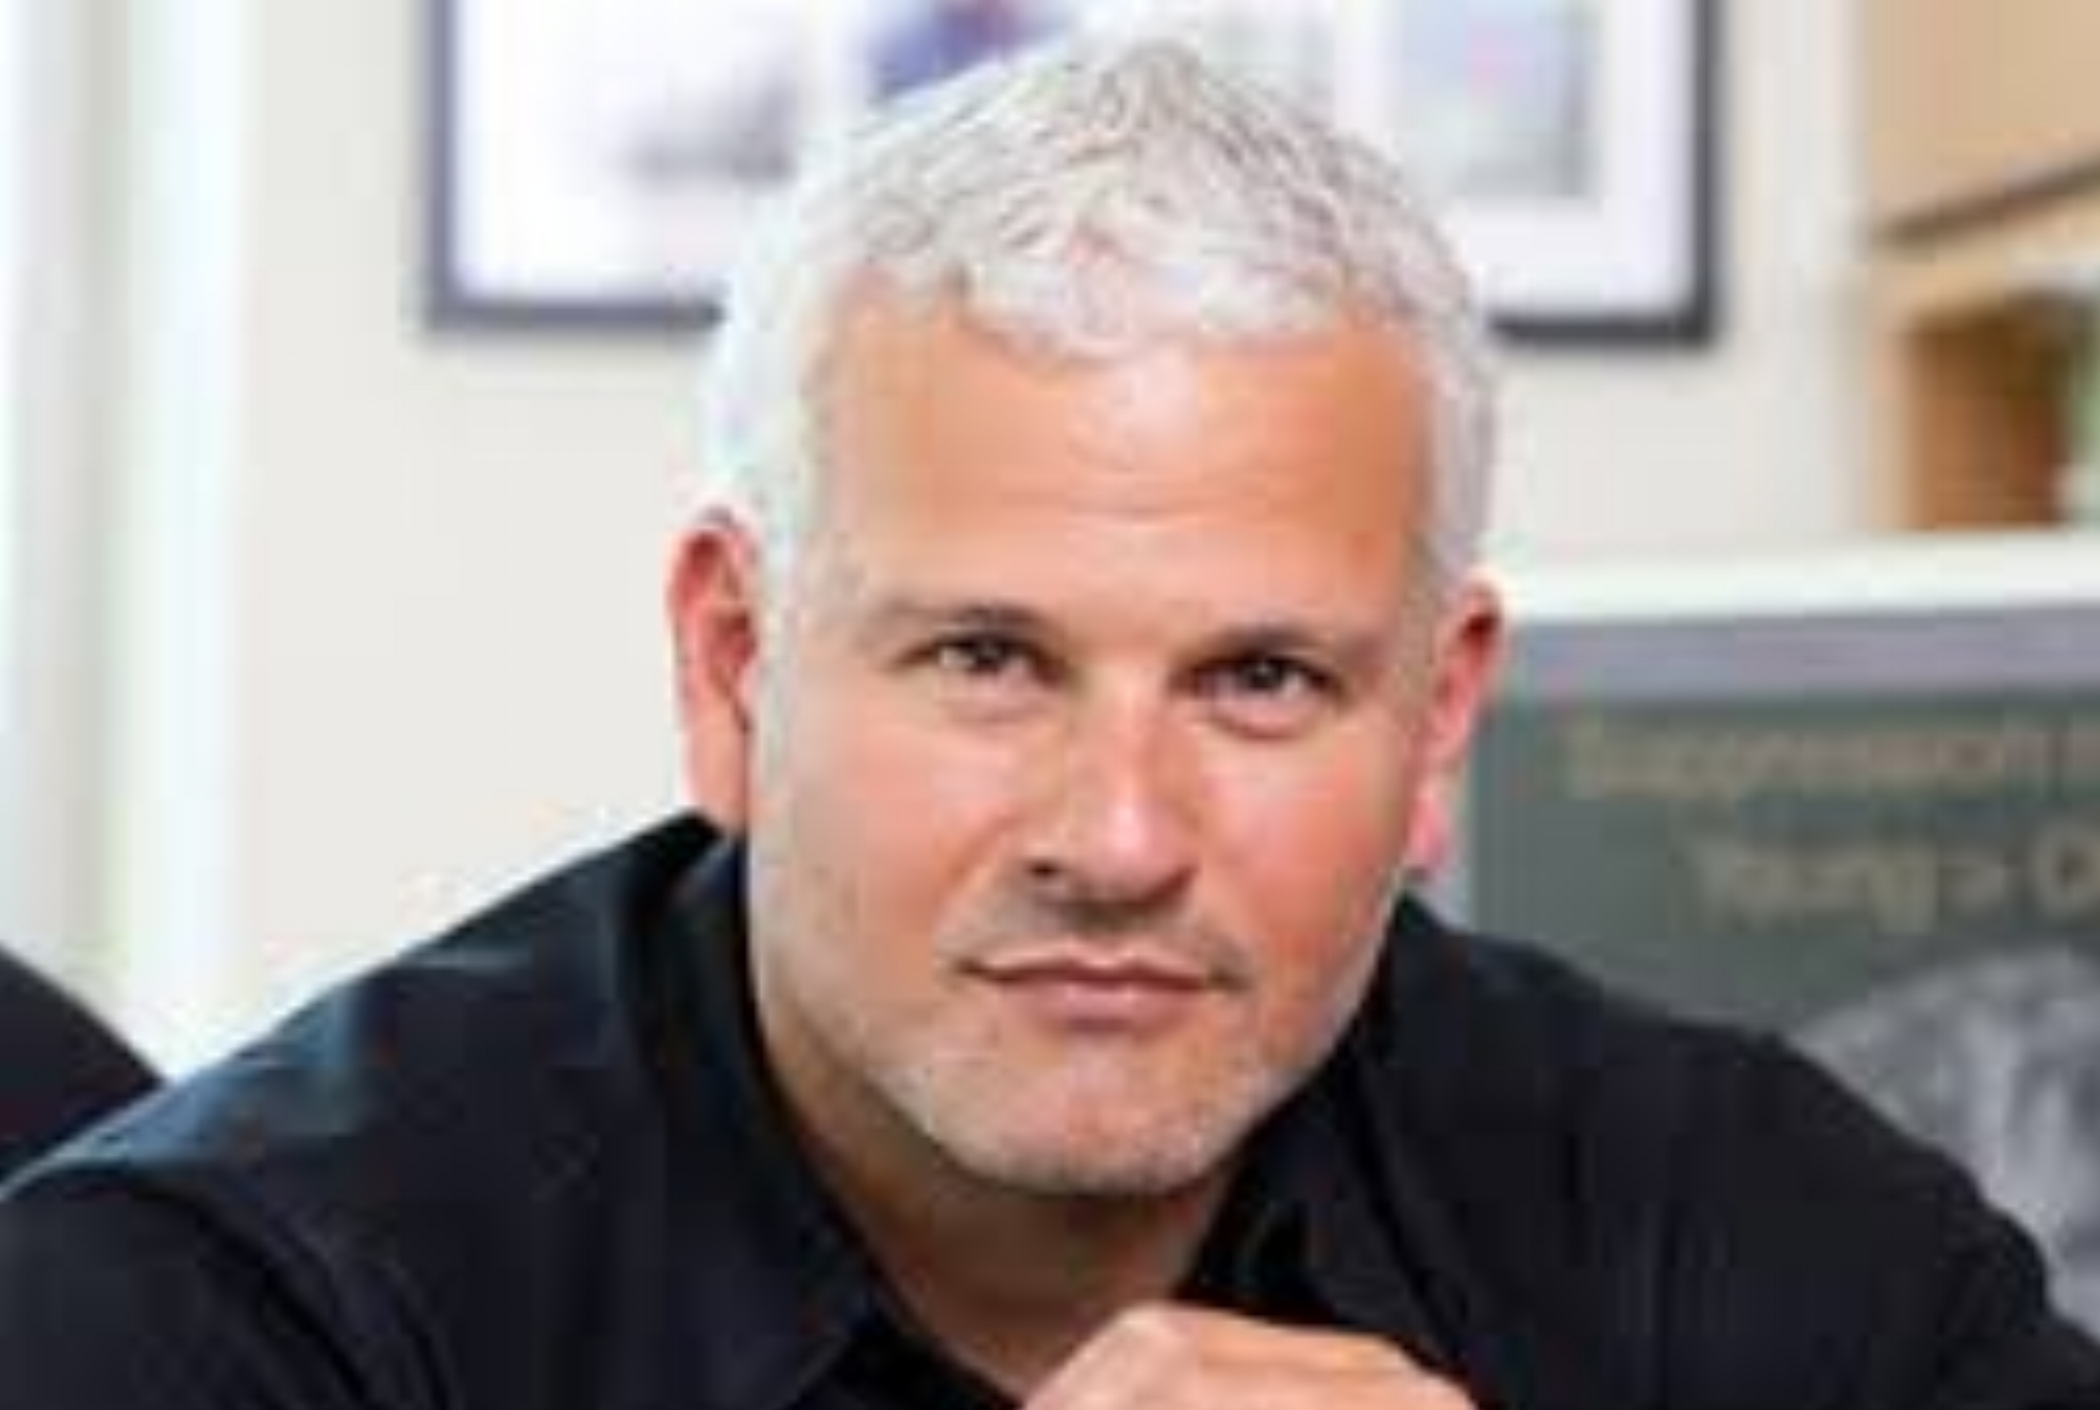 Adam Gazzaley  - Neuroscience & Media  Neuroscientist, author, photographer, entrepreneur and inventor, Gazzaley is the founder and executive director of Neuroscape and Professor of Neurology, Physiology, and Psychiatry at University of California, San Francisco.